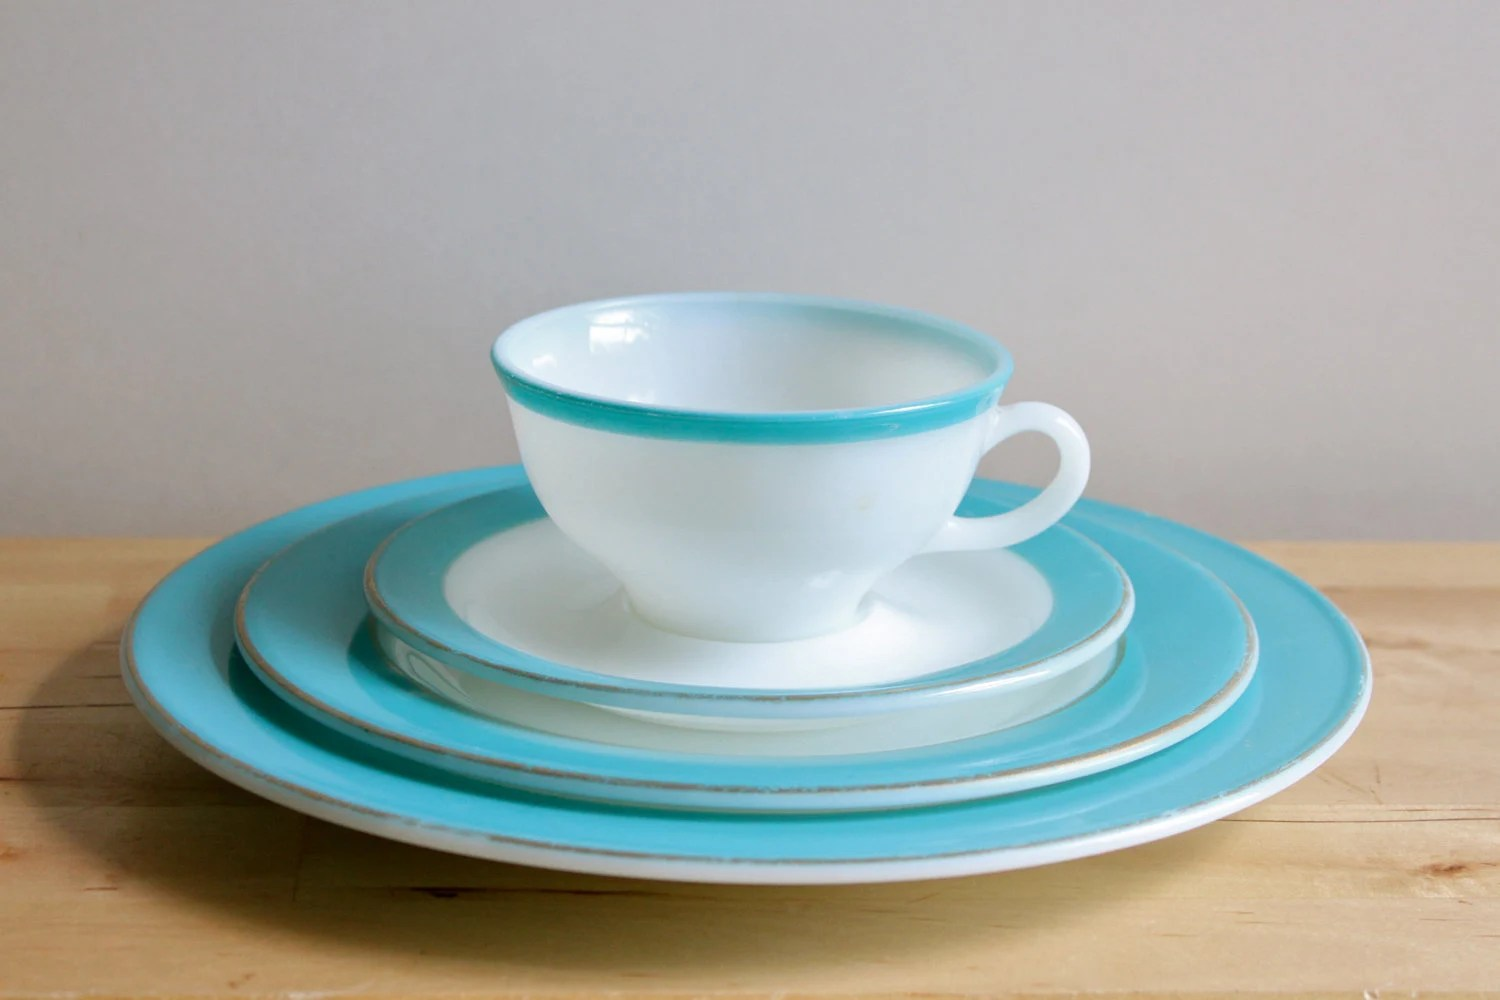 Turquoise Pyrex Dishes Vintage 1950s Milkglass Plate